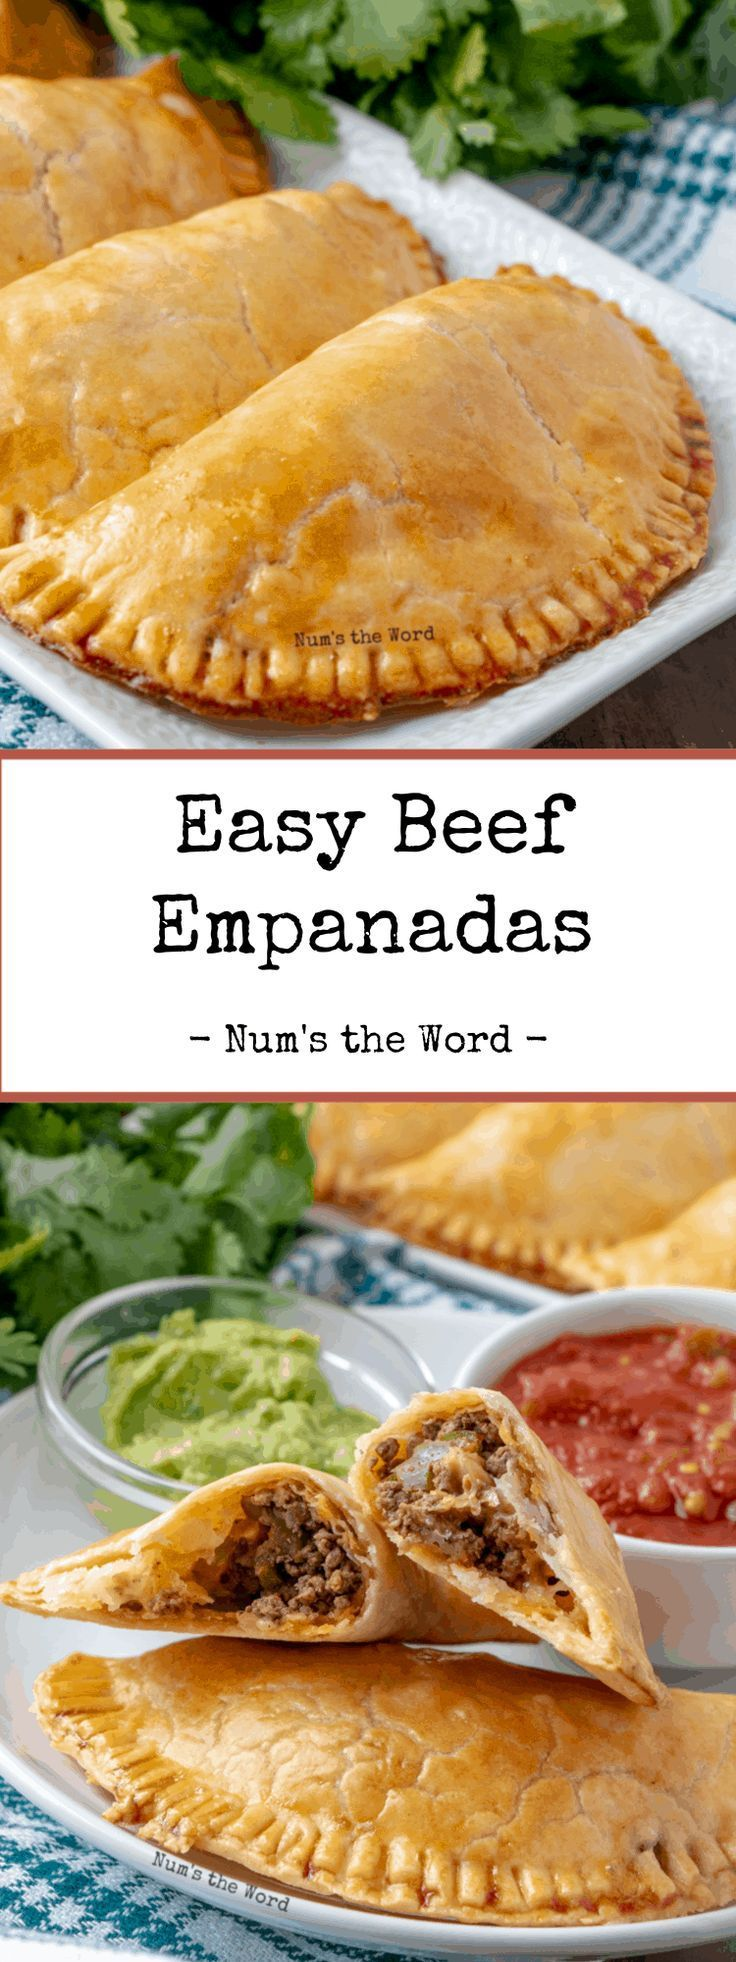 Photo of Easy Beef Empanadas